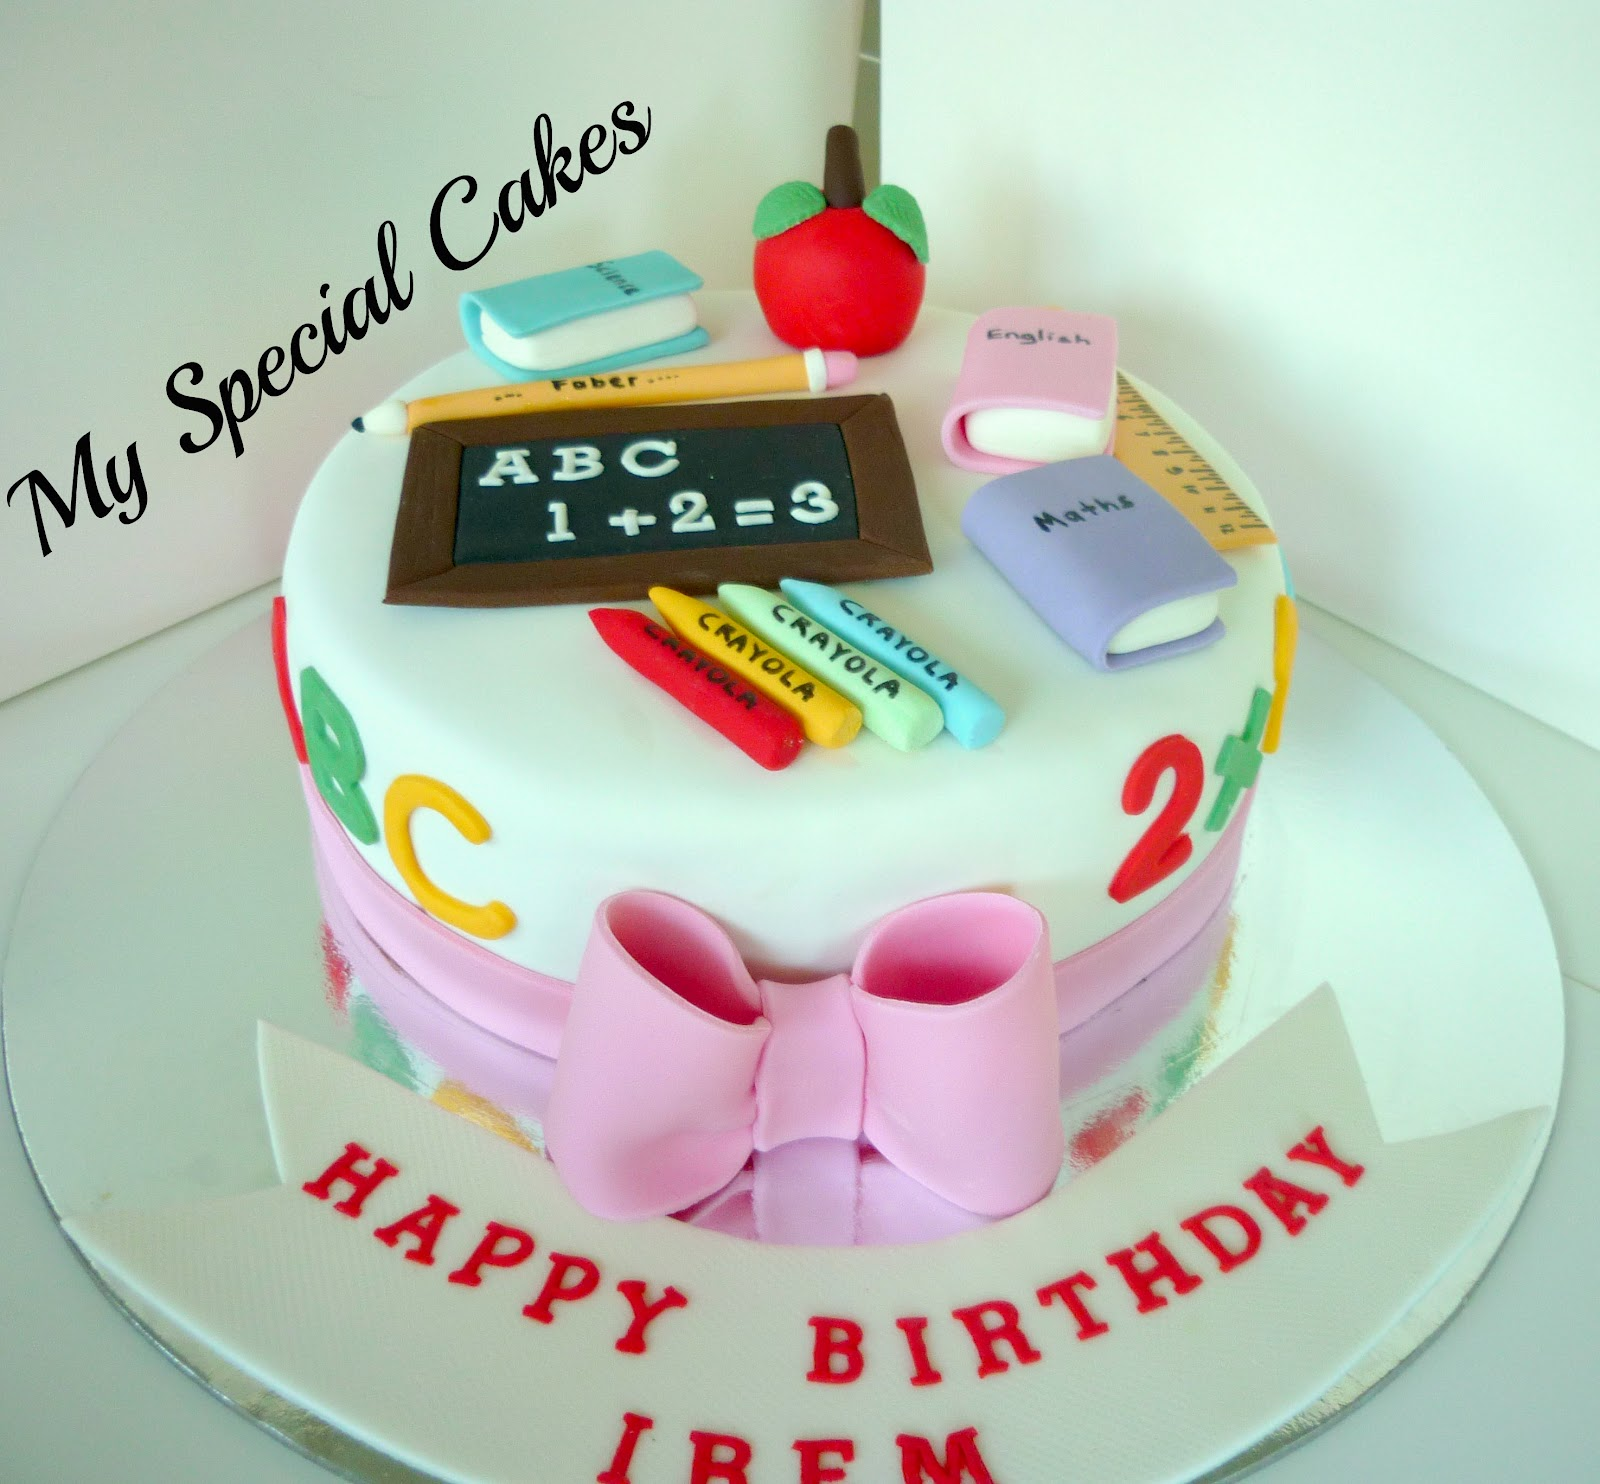 Best Cake Design Schools : My Special Cakes: Teacher Cake